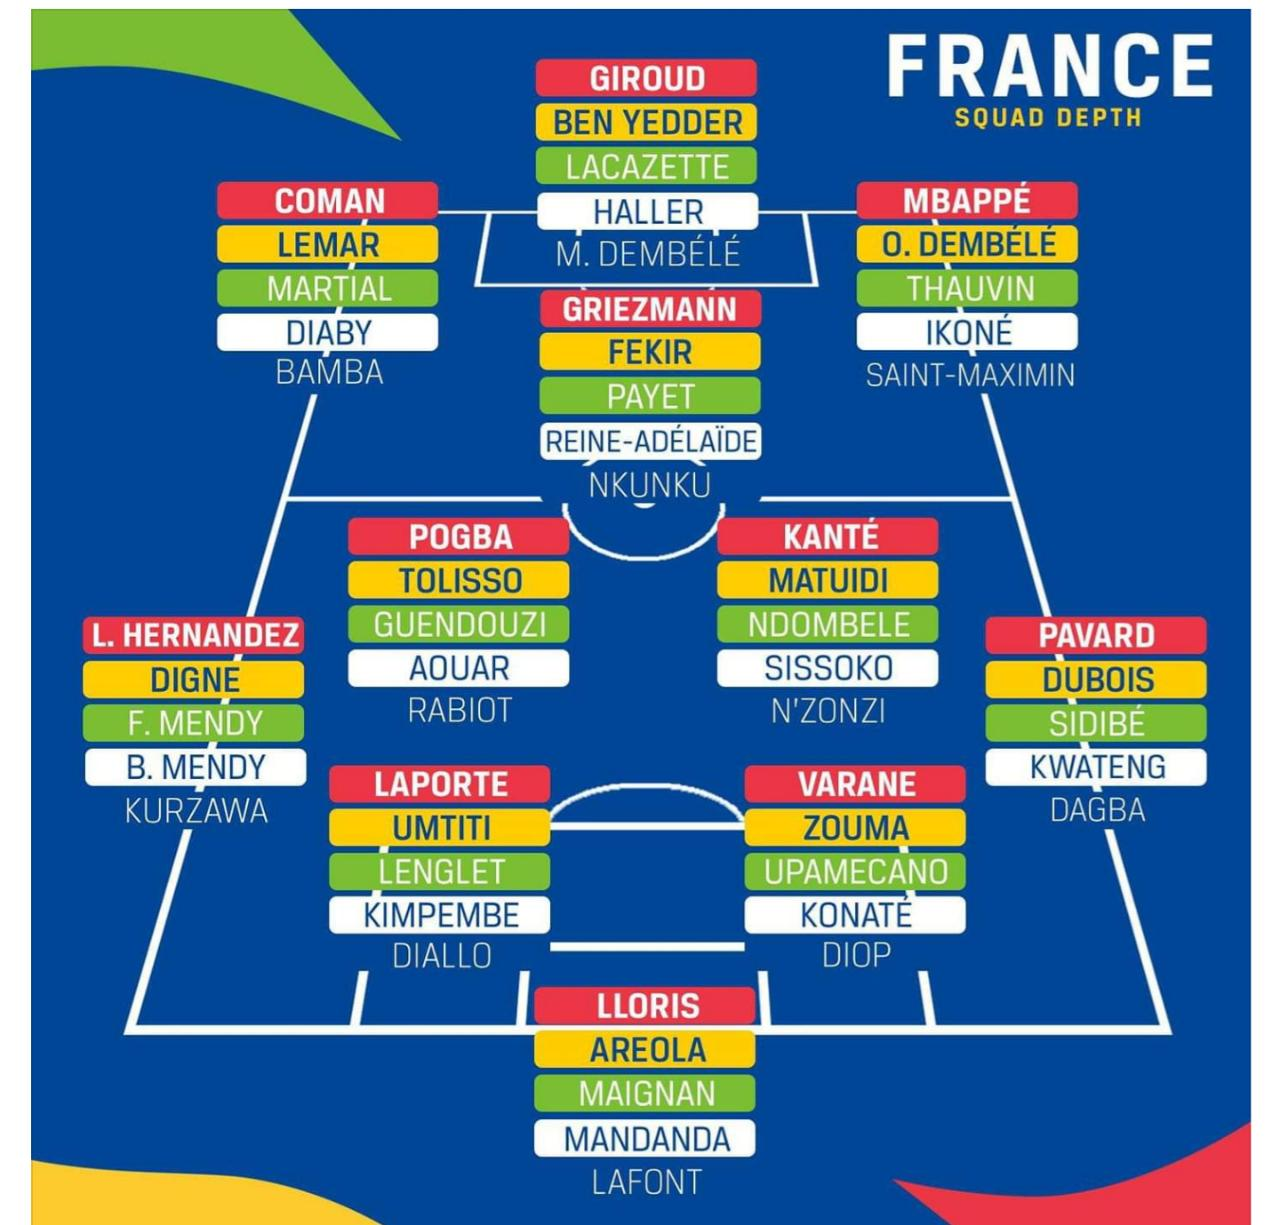 On each position, france have incredible strength in depth. France S National Team Depth Will Blow Your Mind